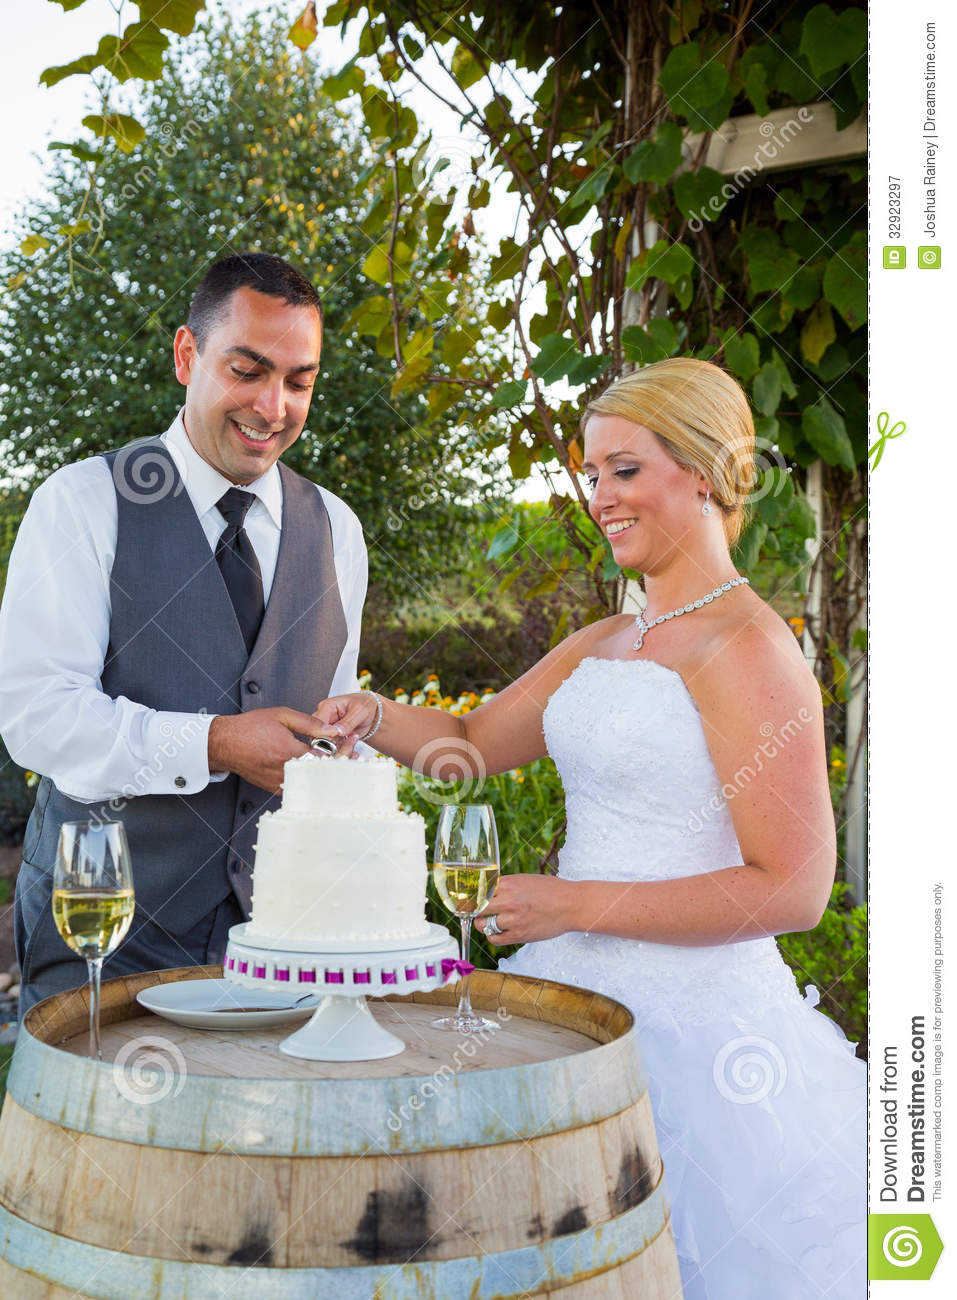 tradition behind cutting the wedding cake and groom cake cutting royalty free stock 21219